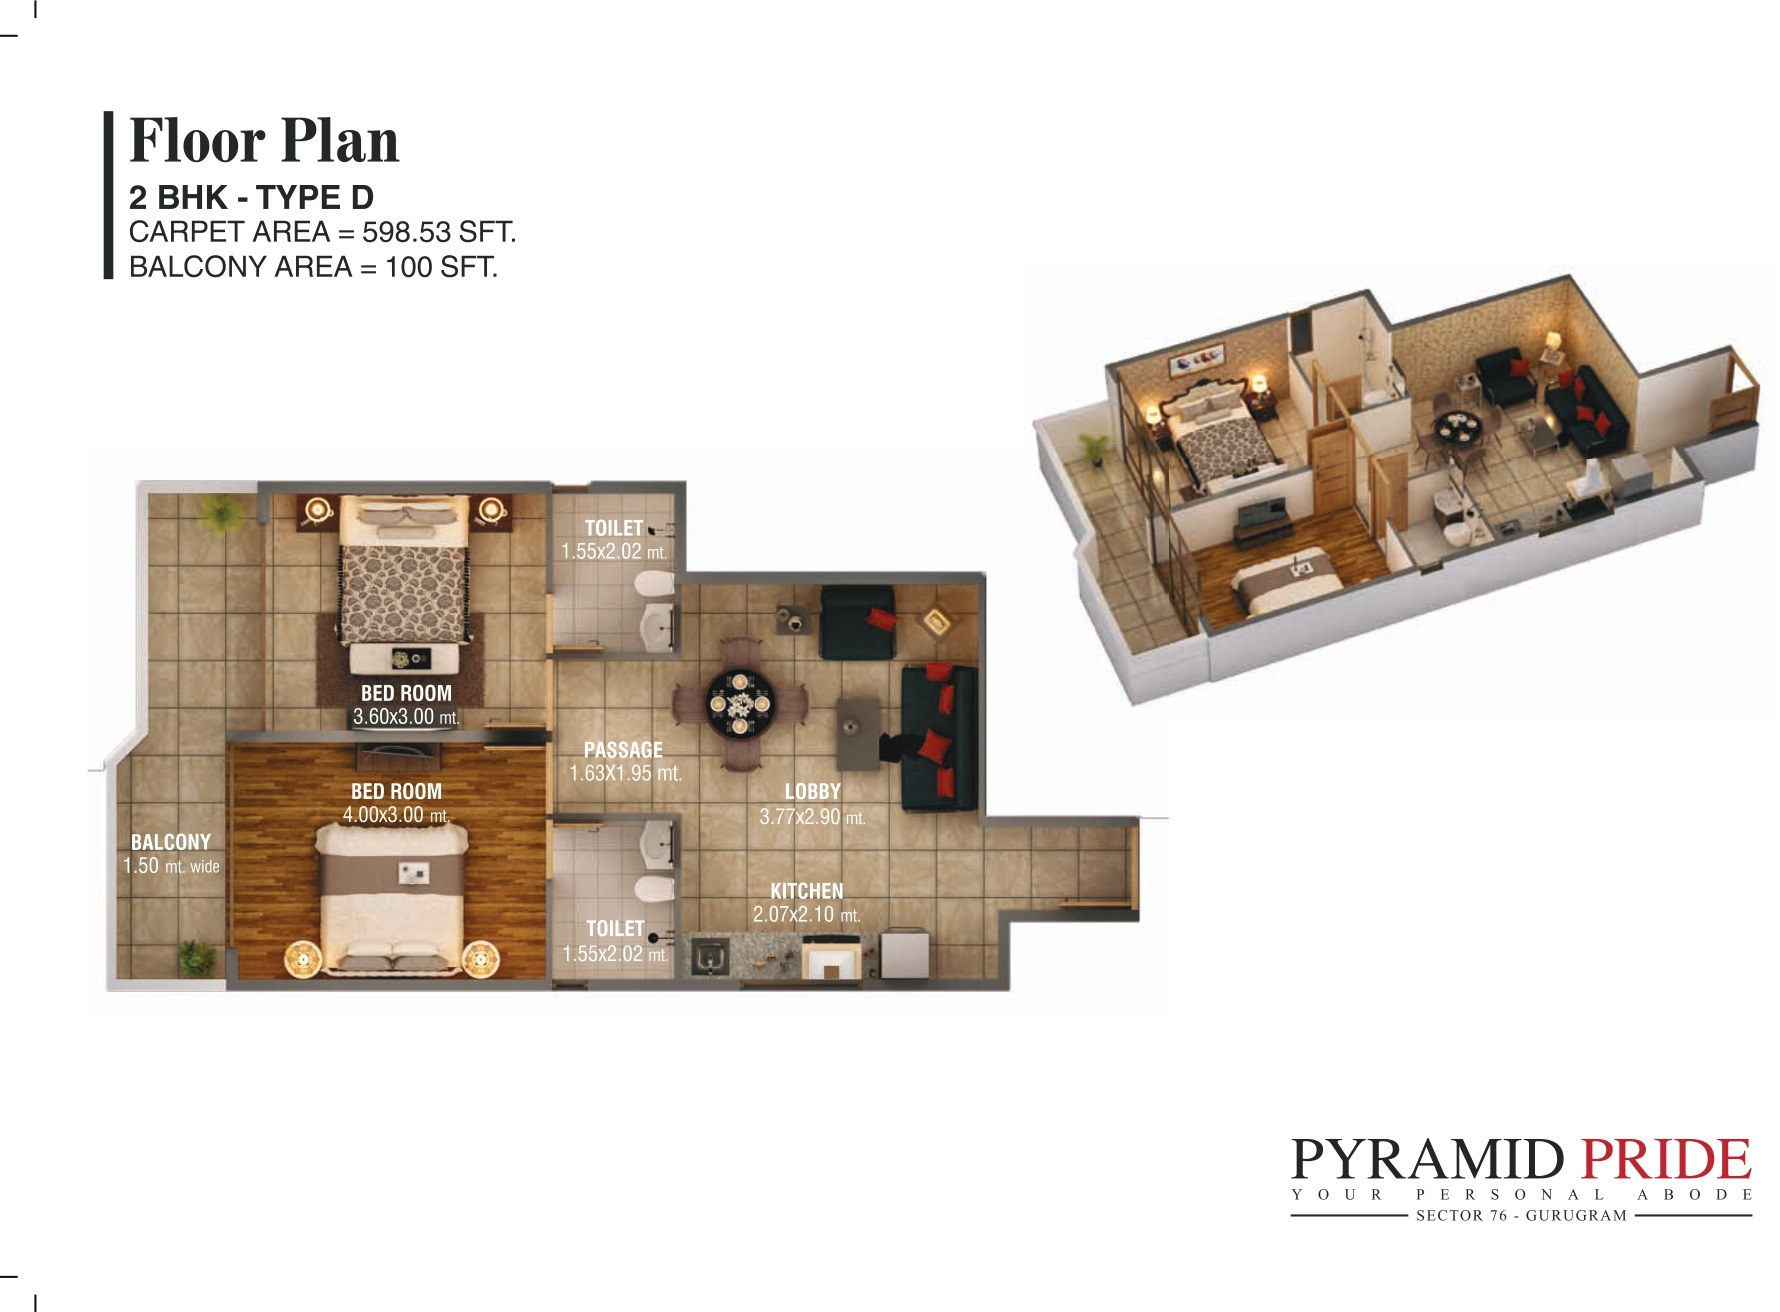 2BHK TypeD Pyramid Pride Sector 76 Gurugram